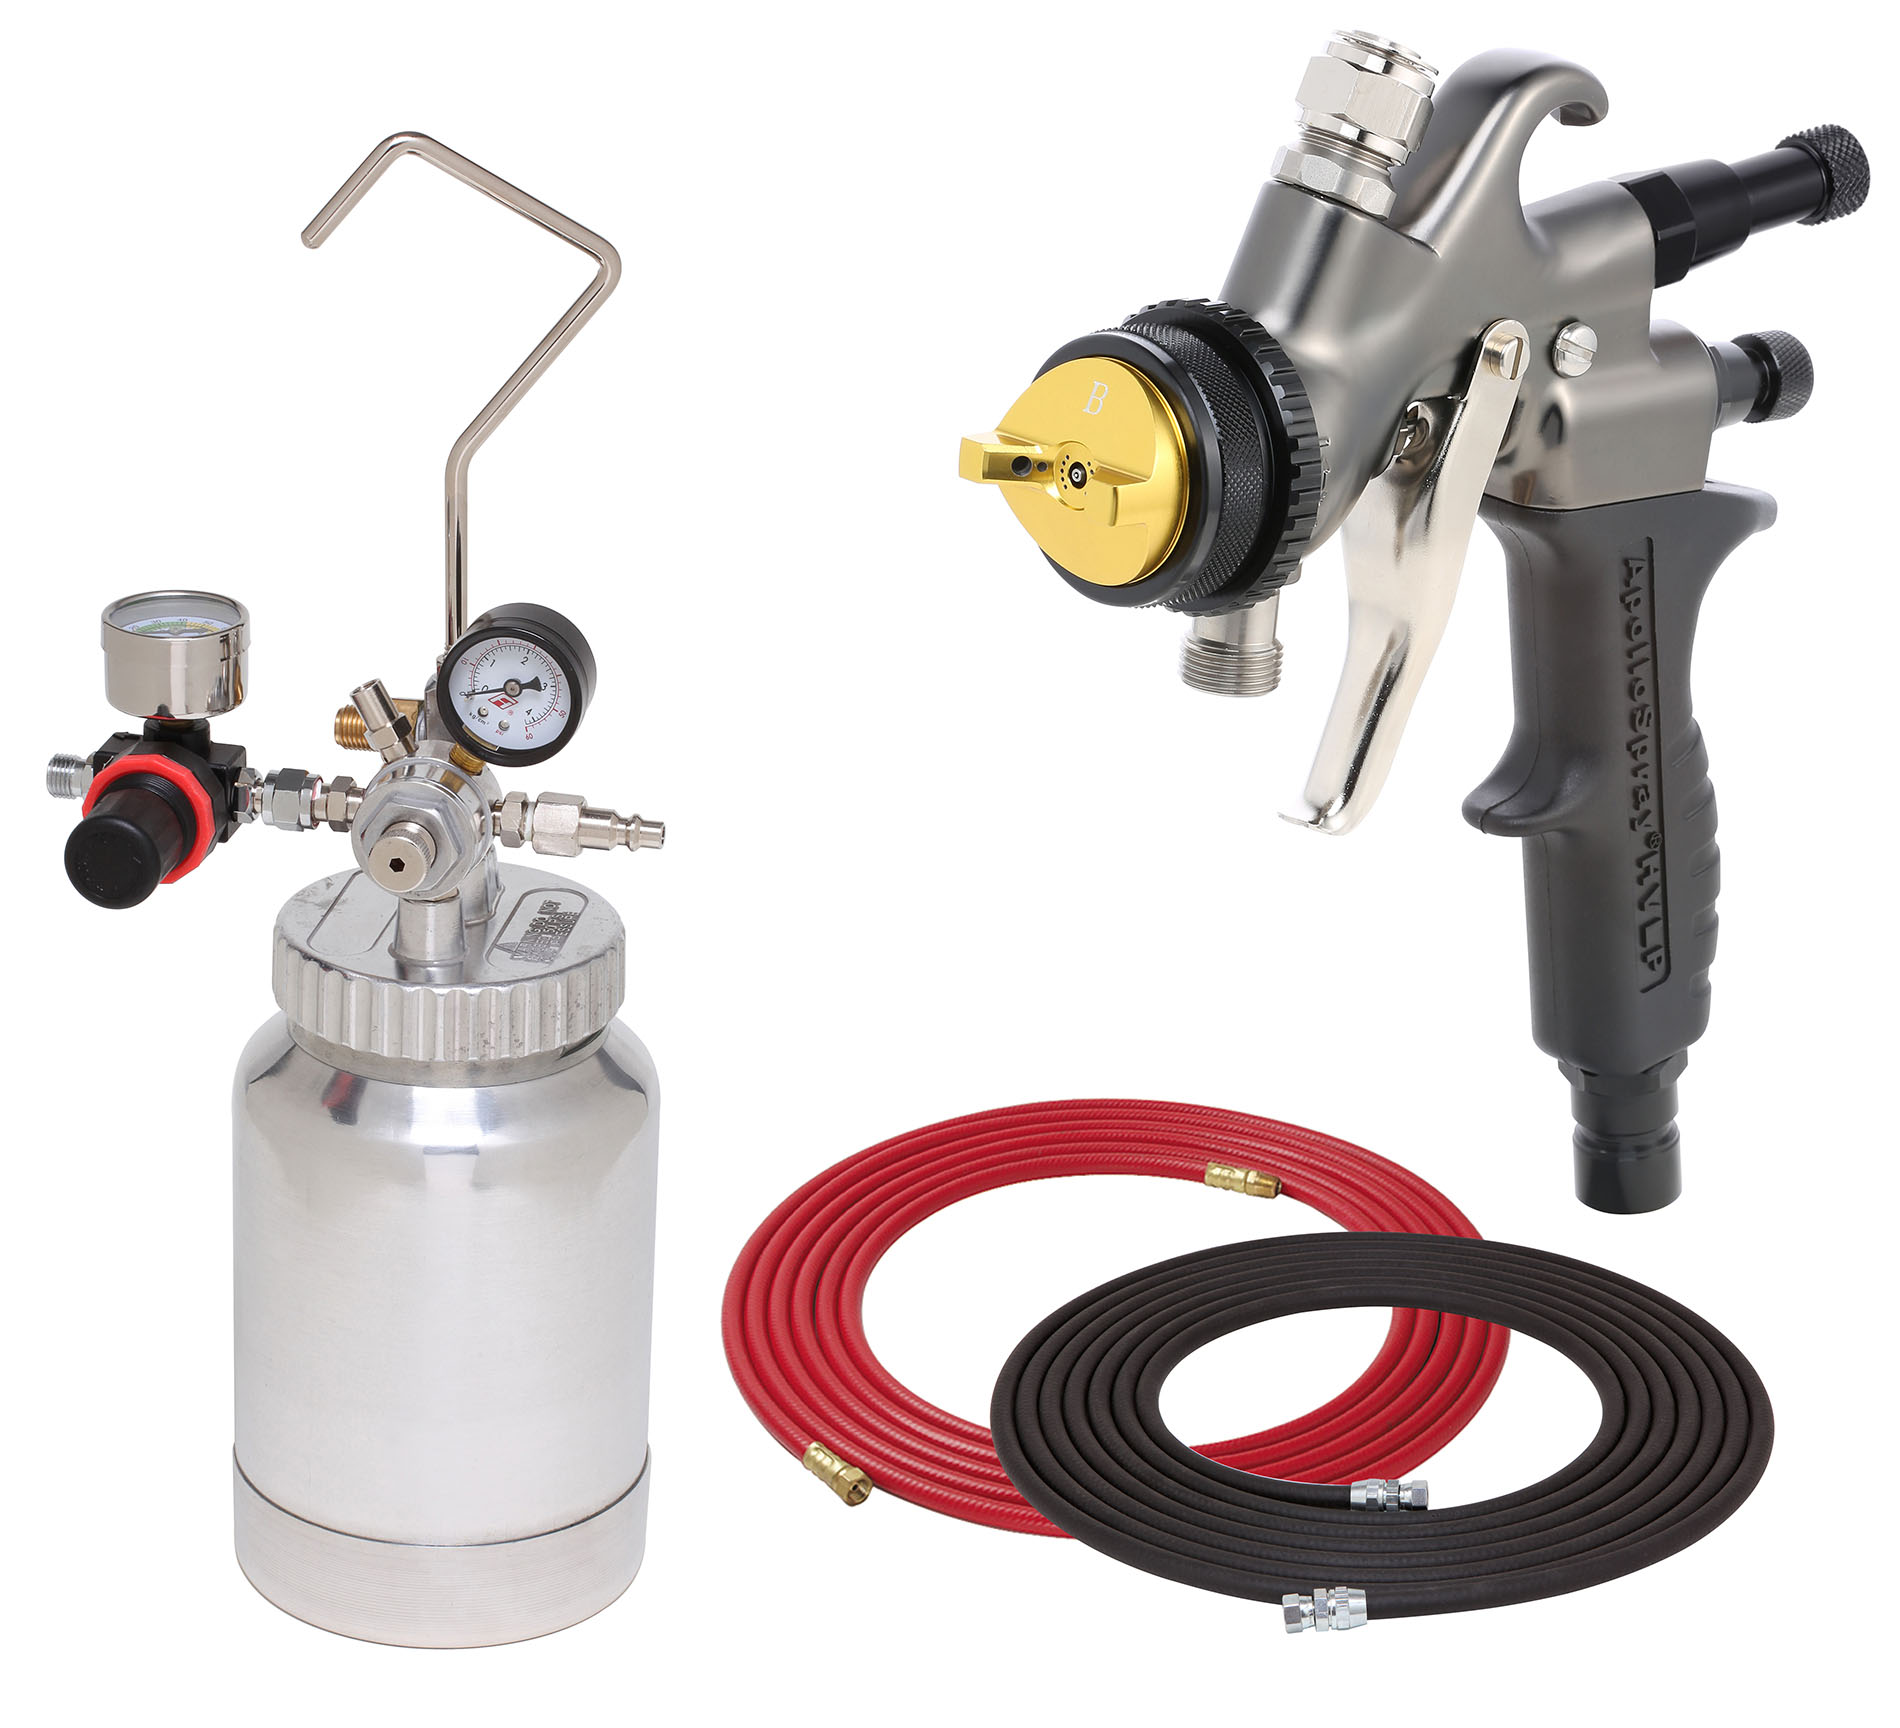 2 Quart Combo Package with the 7700C Sprayer Gun